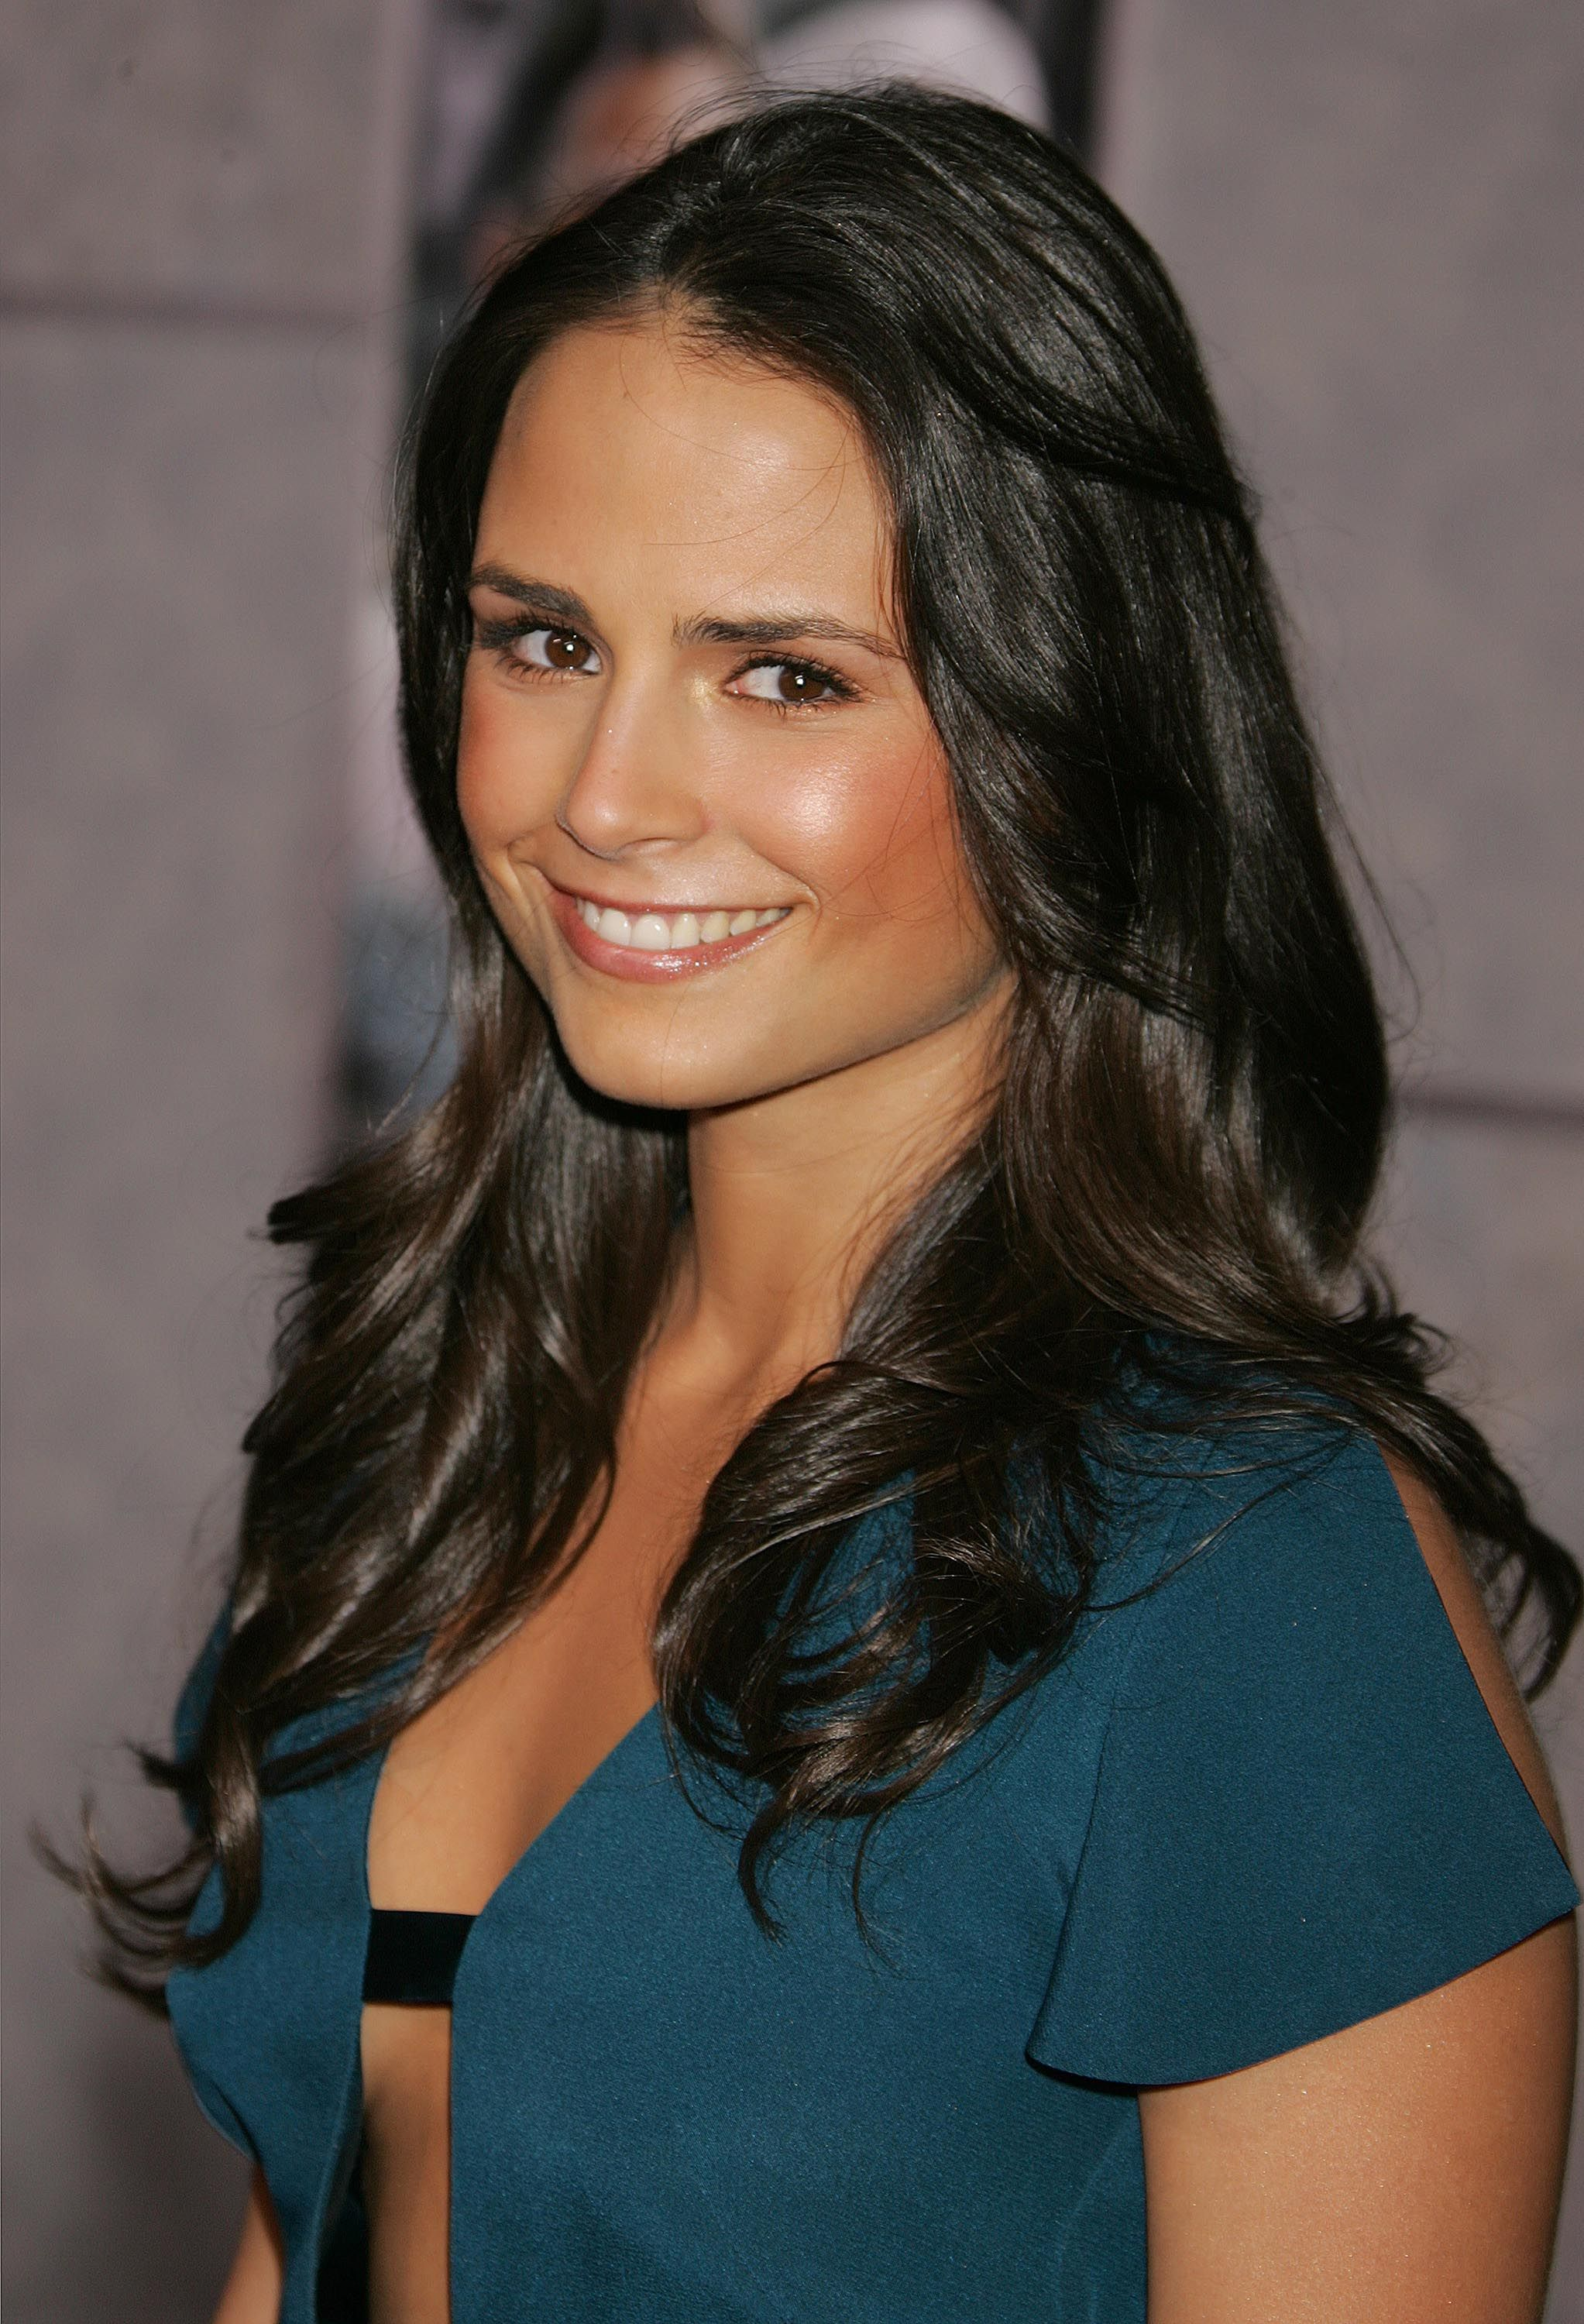 Think, Jordana brewster cleavage agree